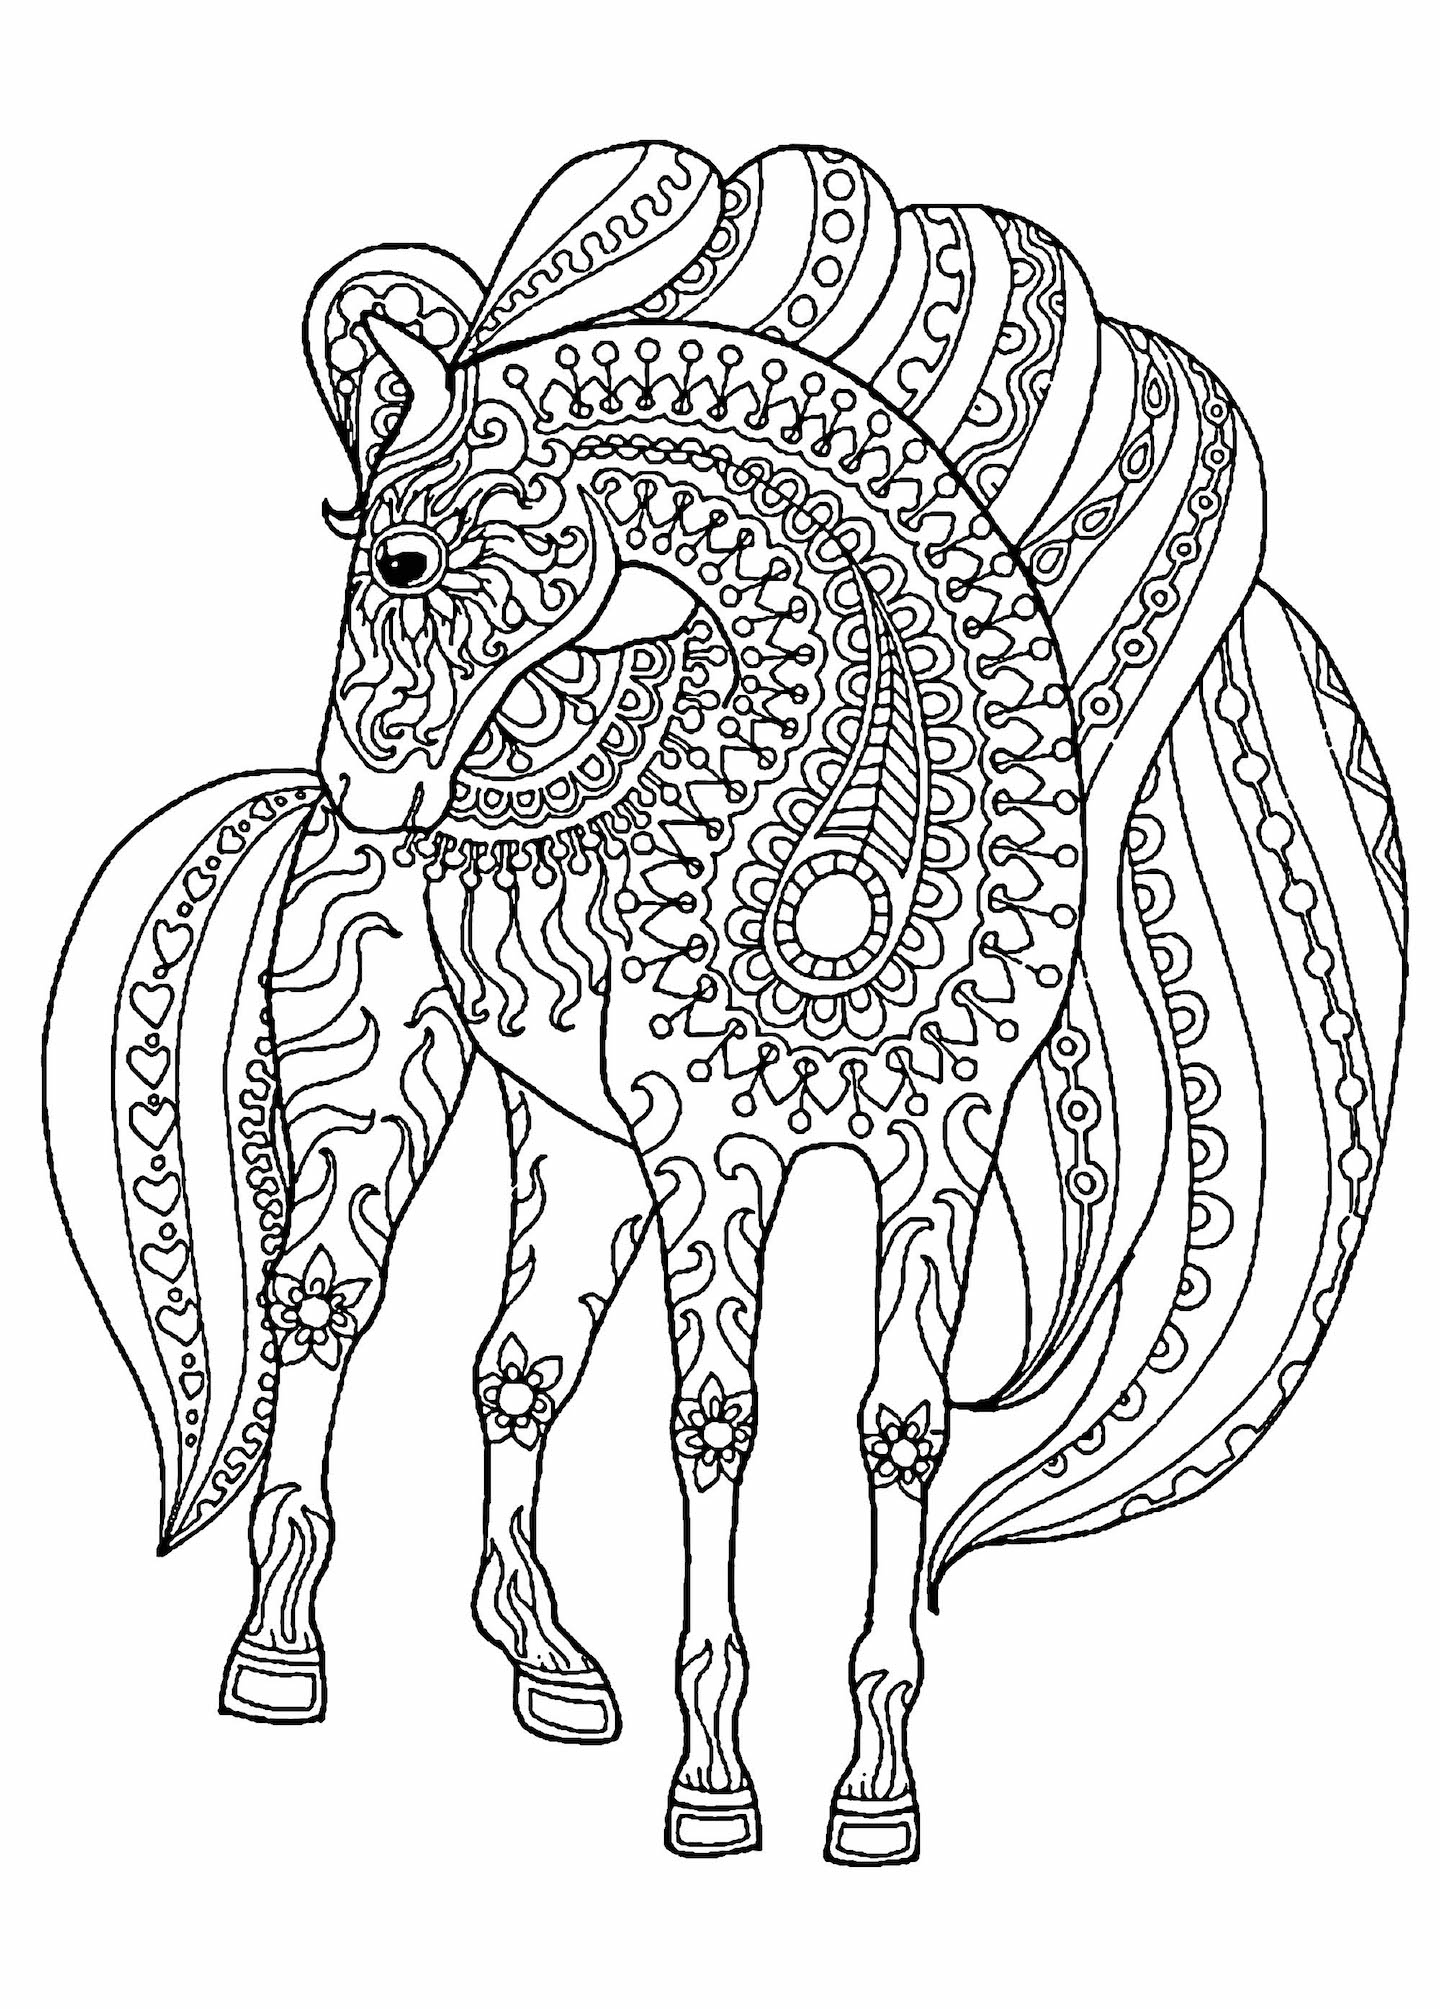 horse pictures to color 30 best horse coloring pages ideas weneedfun to color horse pictures